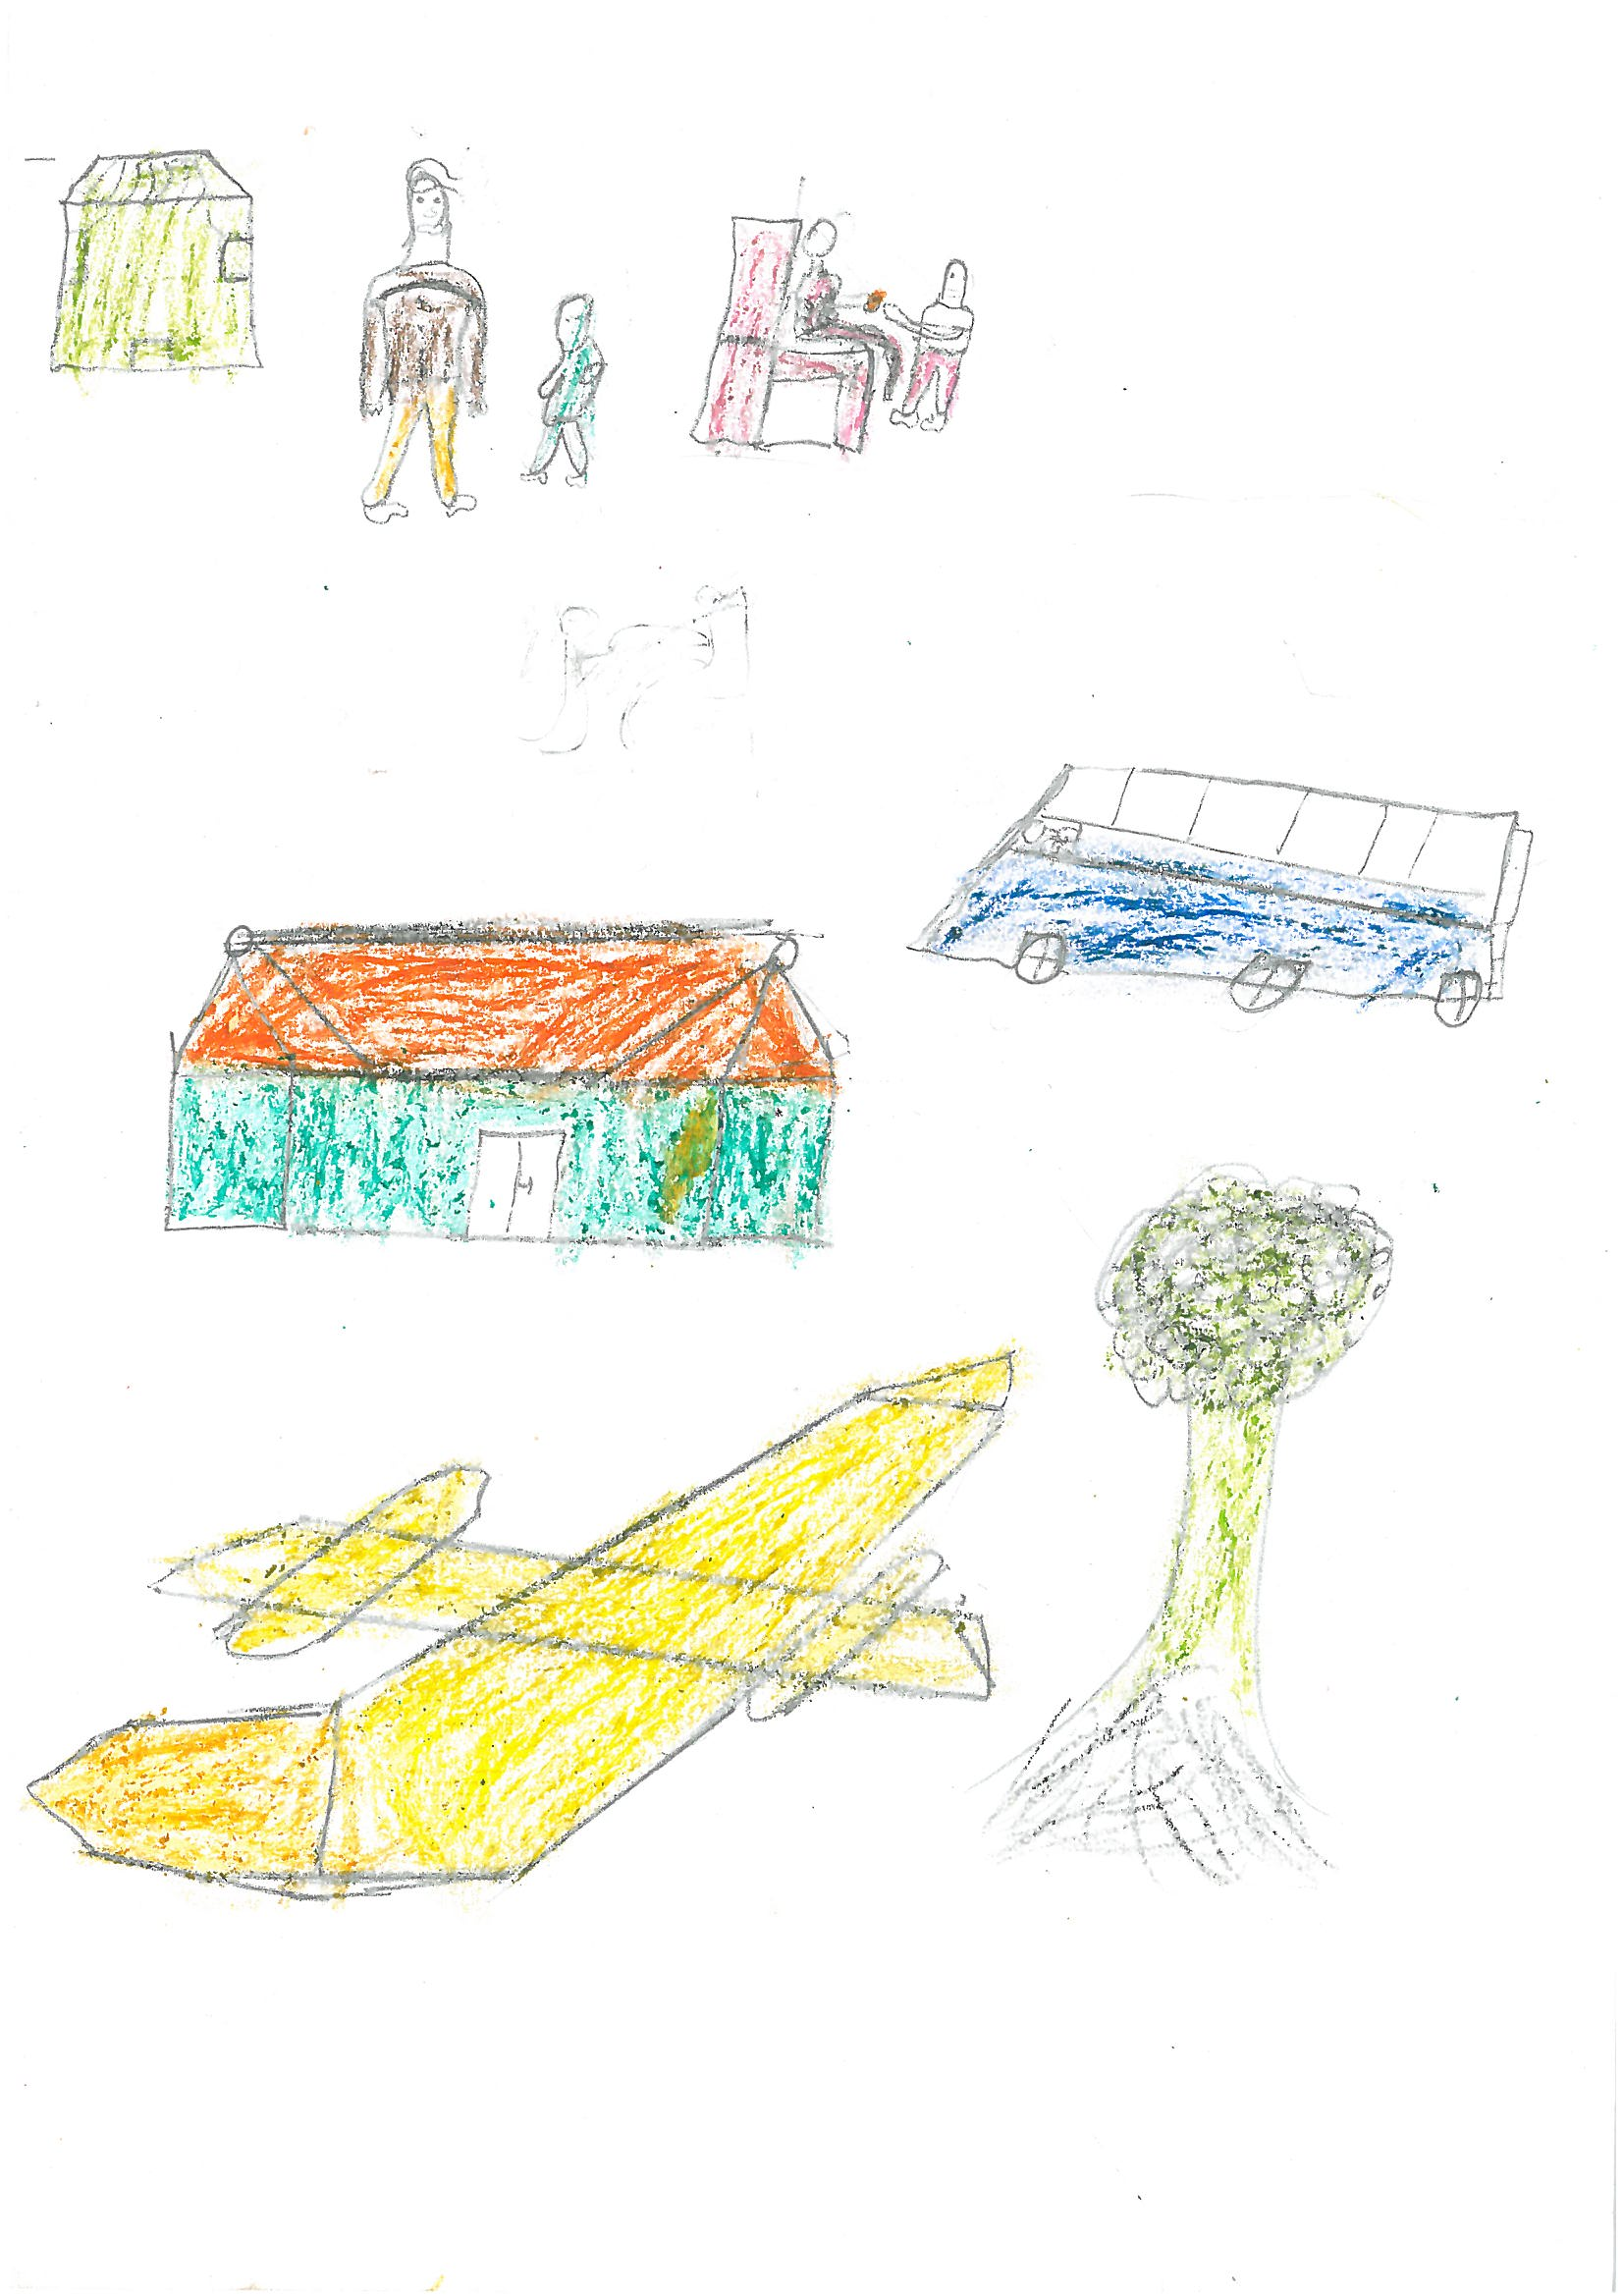 When asked to draw himself taking care of a sick person, Paul drew himself giving his father an orange that he had bought to help his father feel better. He also drew himself accompanying his father to the clinic. At the bottom, he included a drawing of his airplane, the one he used to fly passengers from Zambia to South Africa